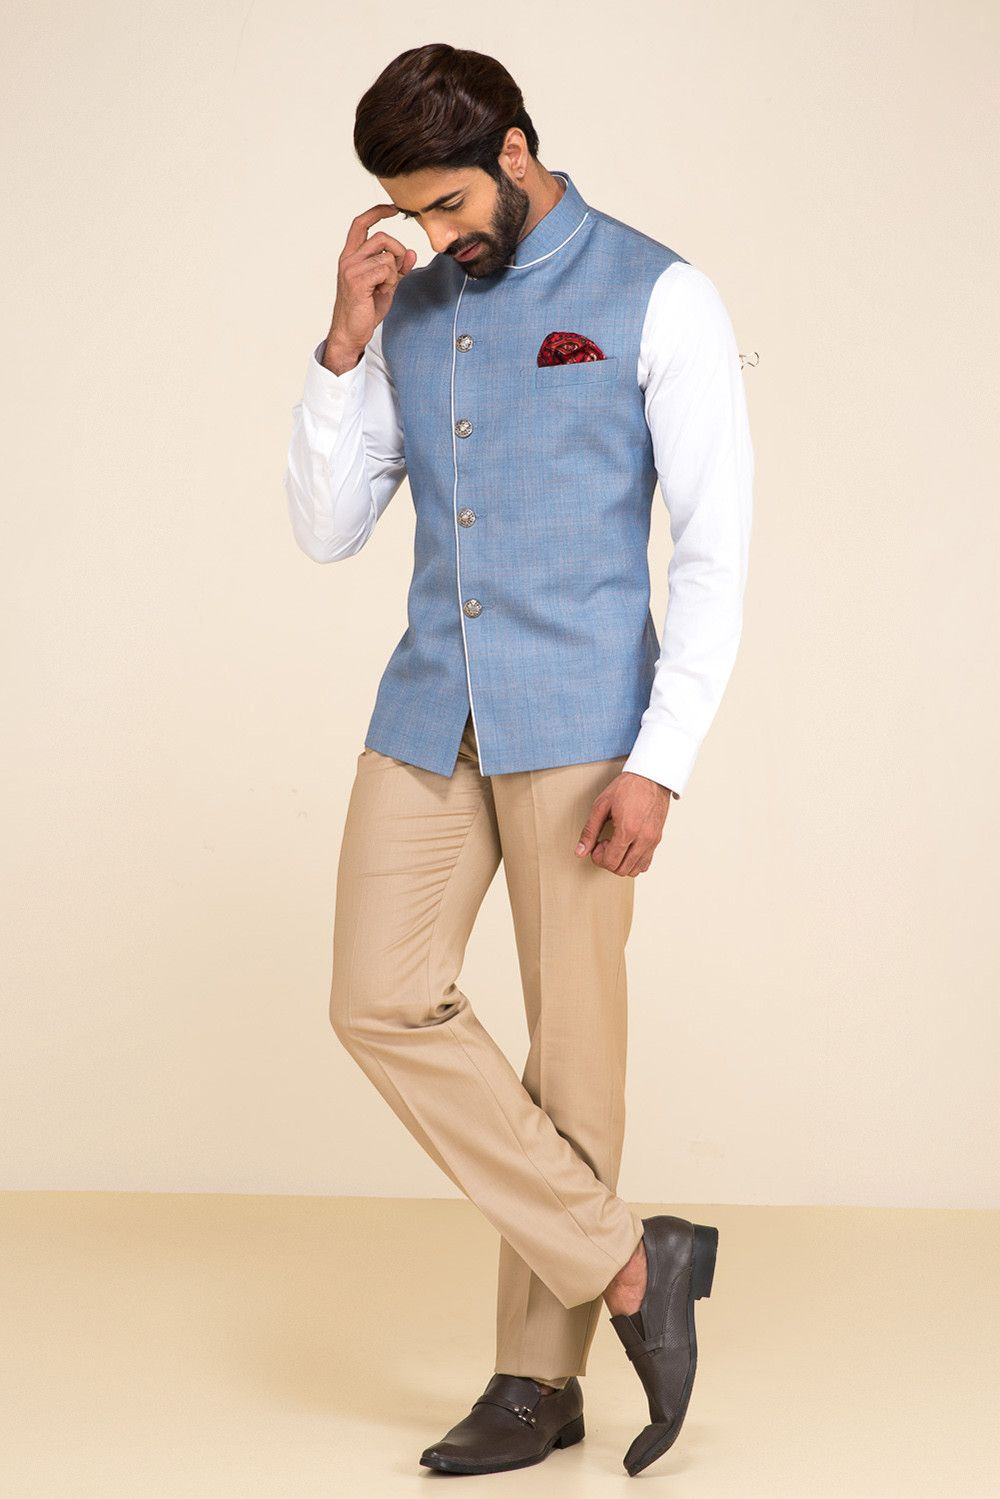 e75e957bbec49f Oshnaar Blue Plaid Nehru Jacket With White Shirt And Beige Pants. #flyrobe  #groom #groomwear #groomsherwani #sherwani #flyrobe #wedding  #designersherwani